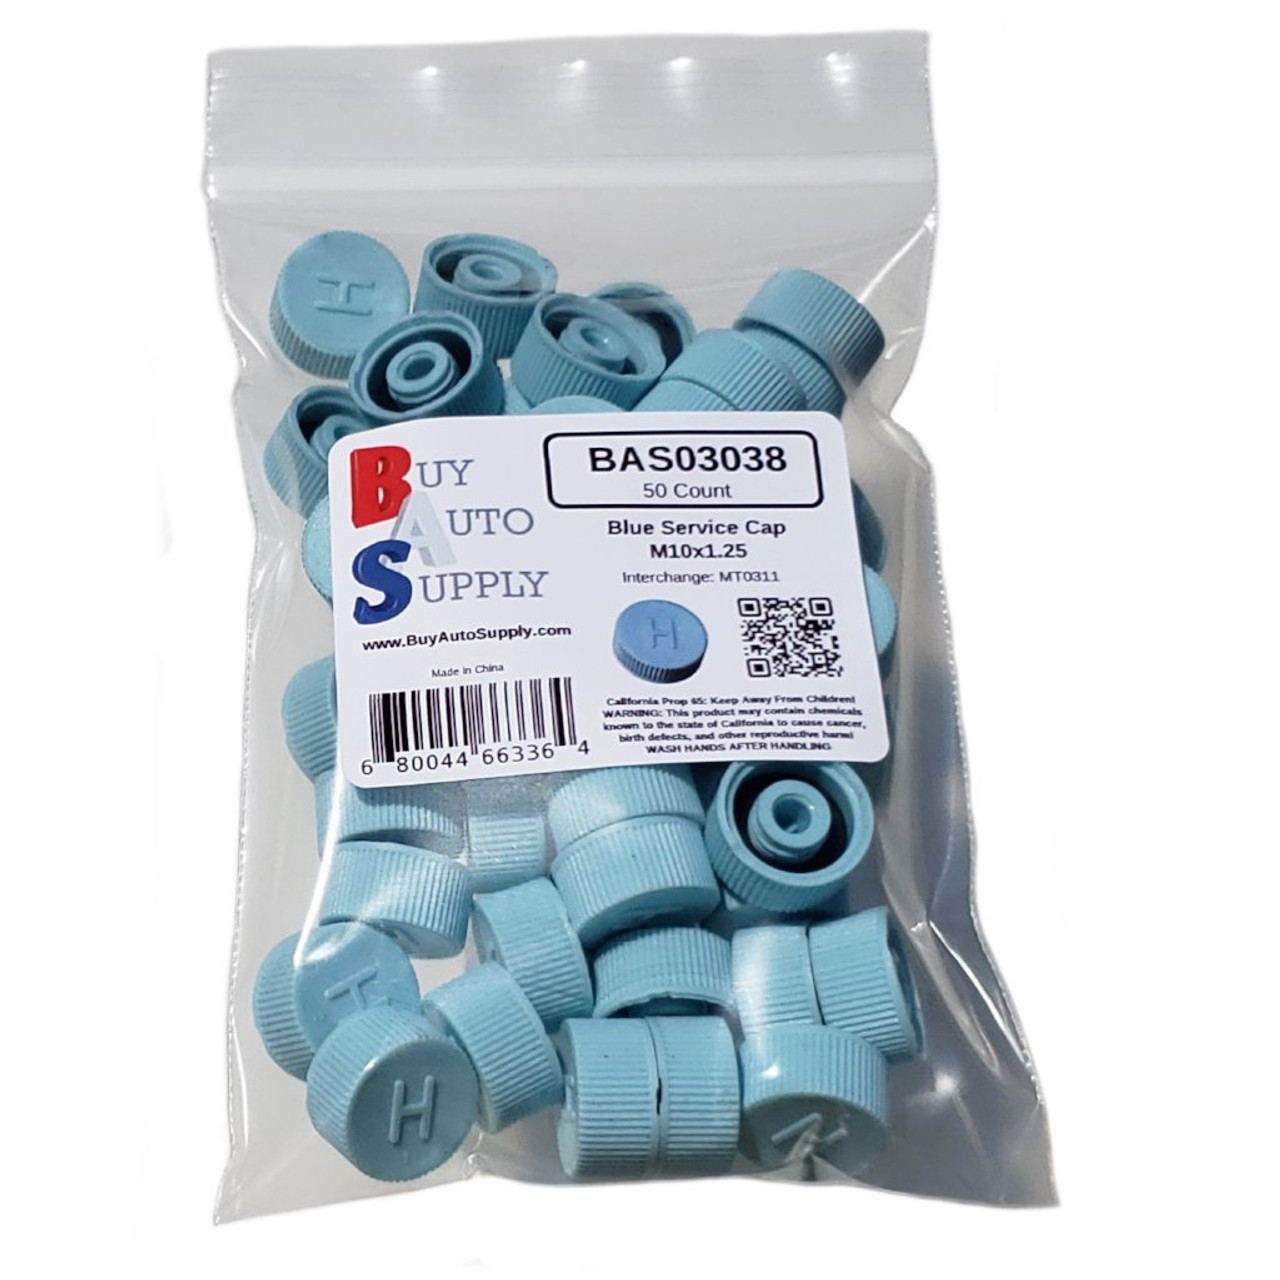 Bag of 50 AC Service Port Caps R134a - Blue High Side M10x1.25 - Interchanges: MT0311, 69501